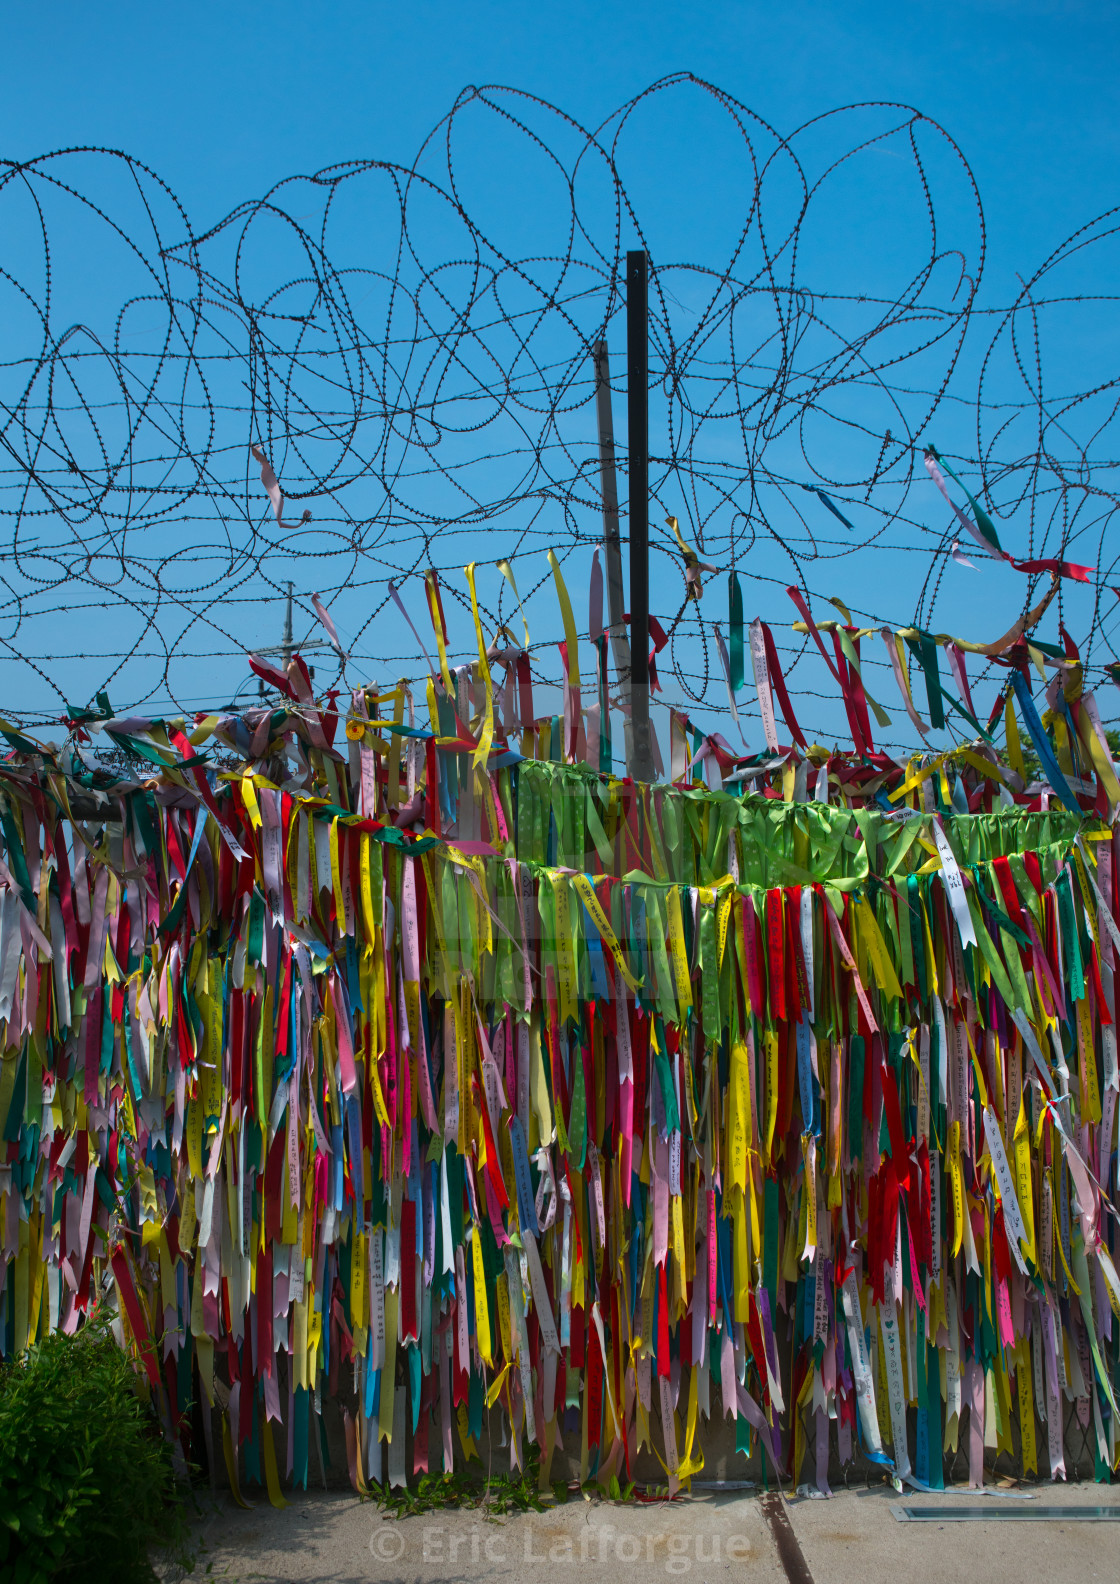 Messages of peace and unity written on ribbons left on fence at dmz ...